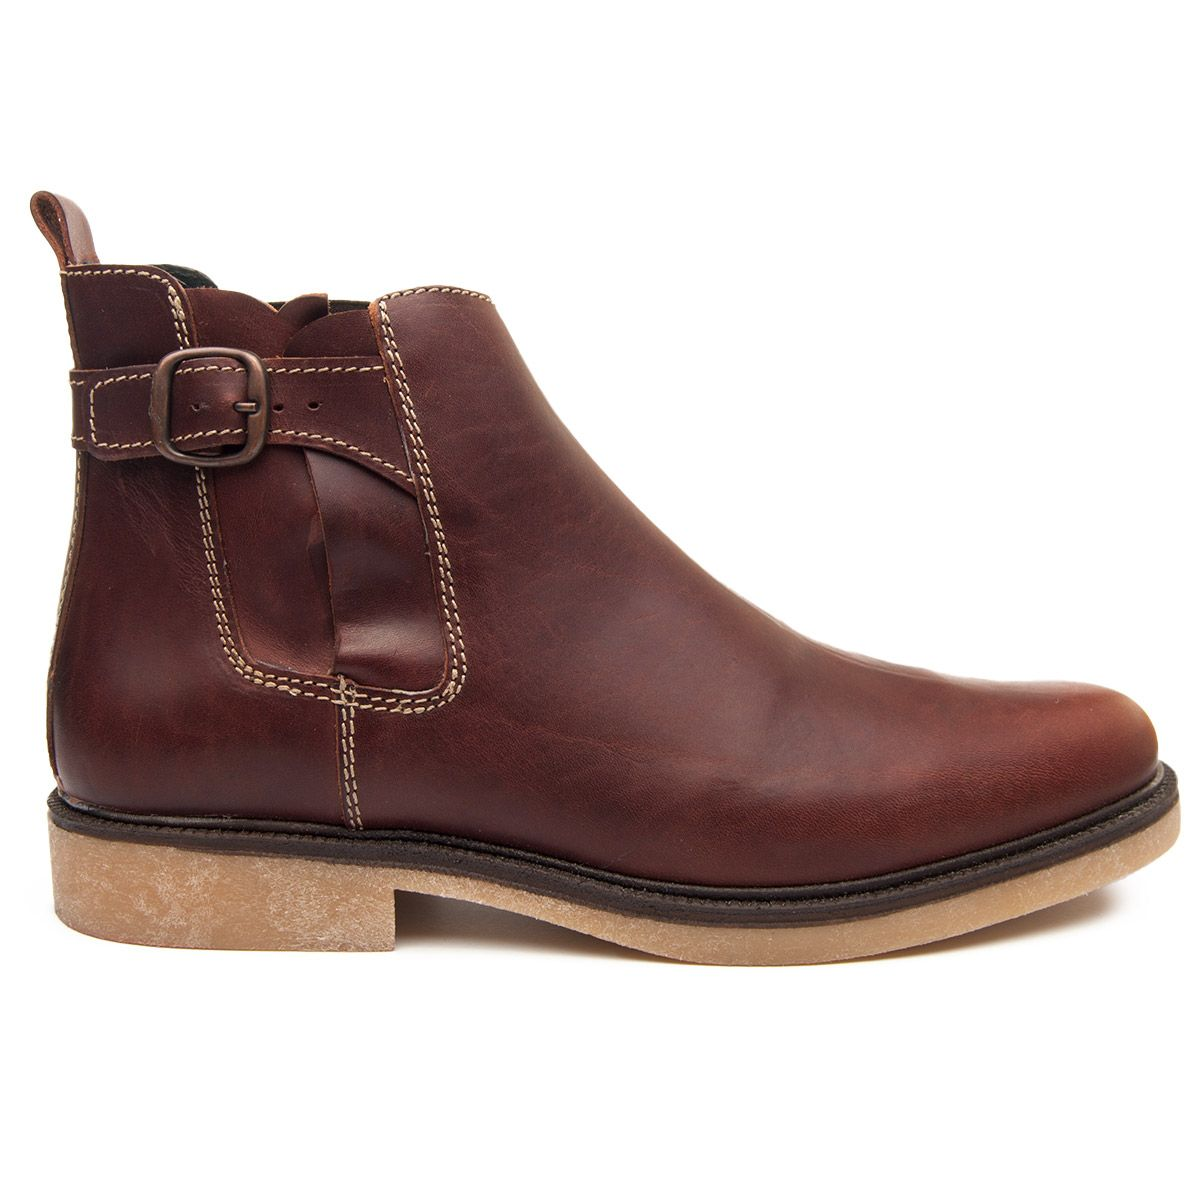 Montevita Side Buckle Ankle Boot in Brown